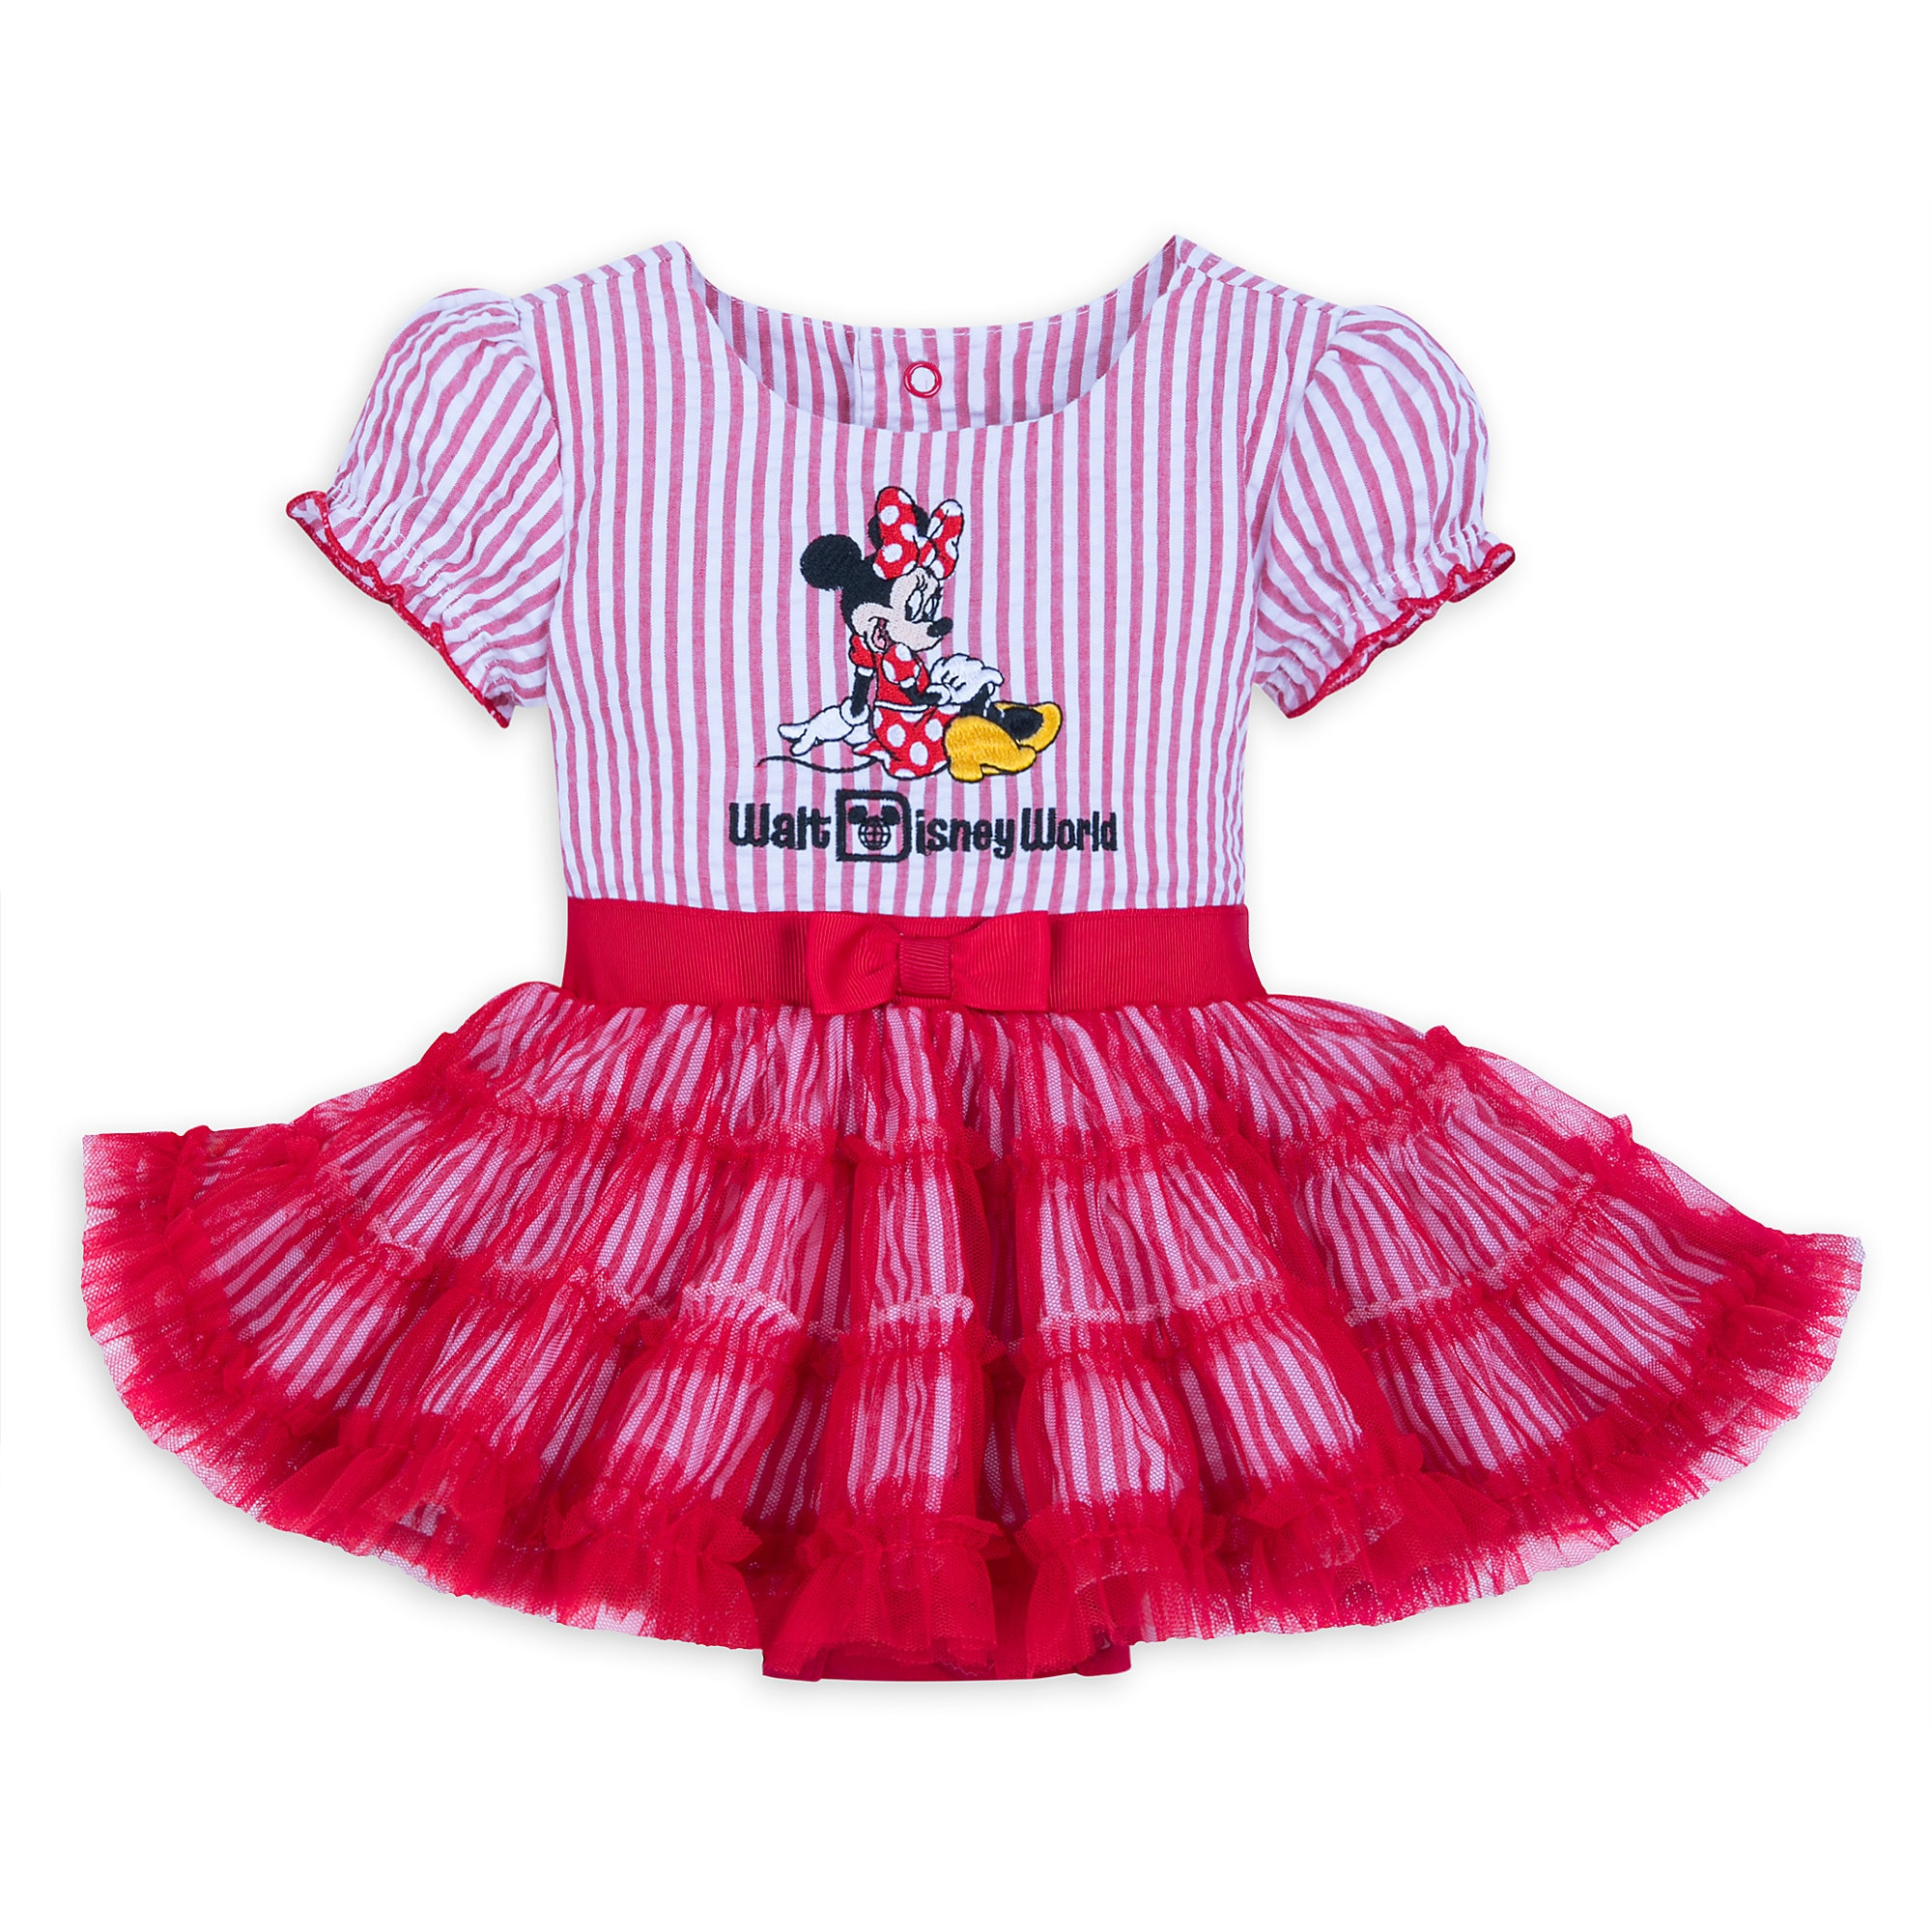 dccfa6531f4 Minnie Mouse Bodysuit for Baby - Walt Disney World